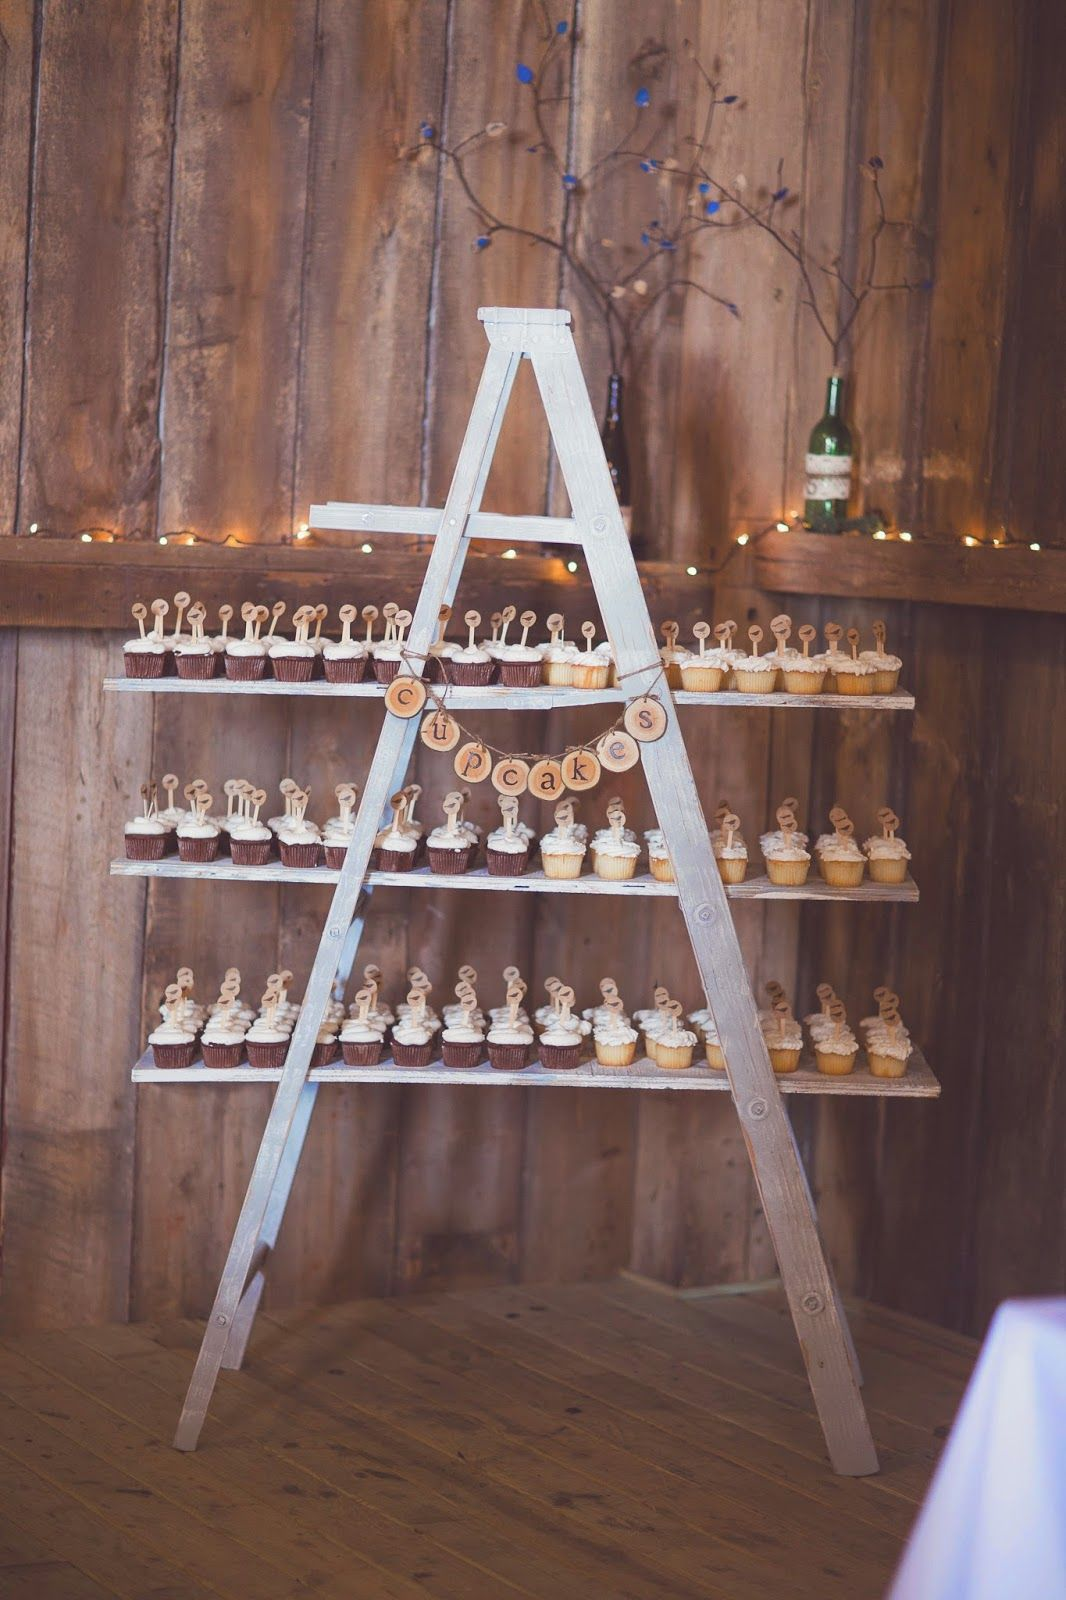 Diy Backdrop Stand For Dessert Table Cupcake Ladder Display Signed By Soden The Best Day